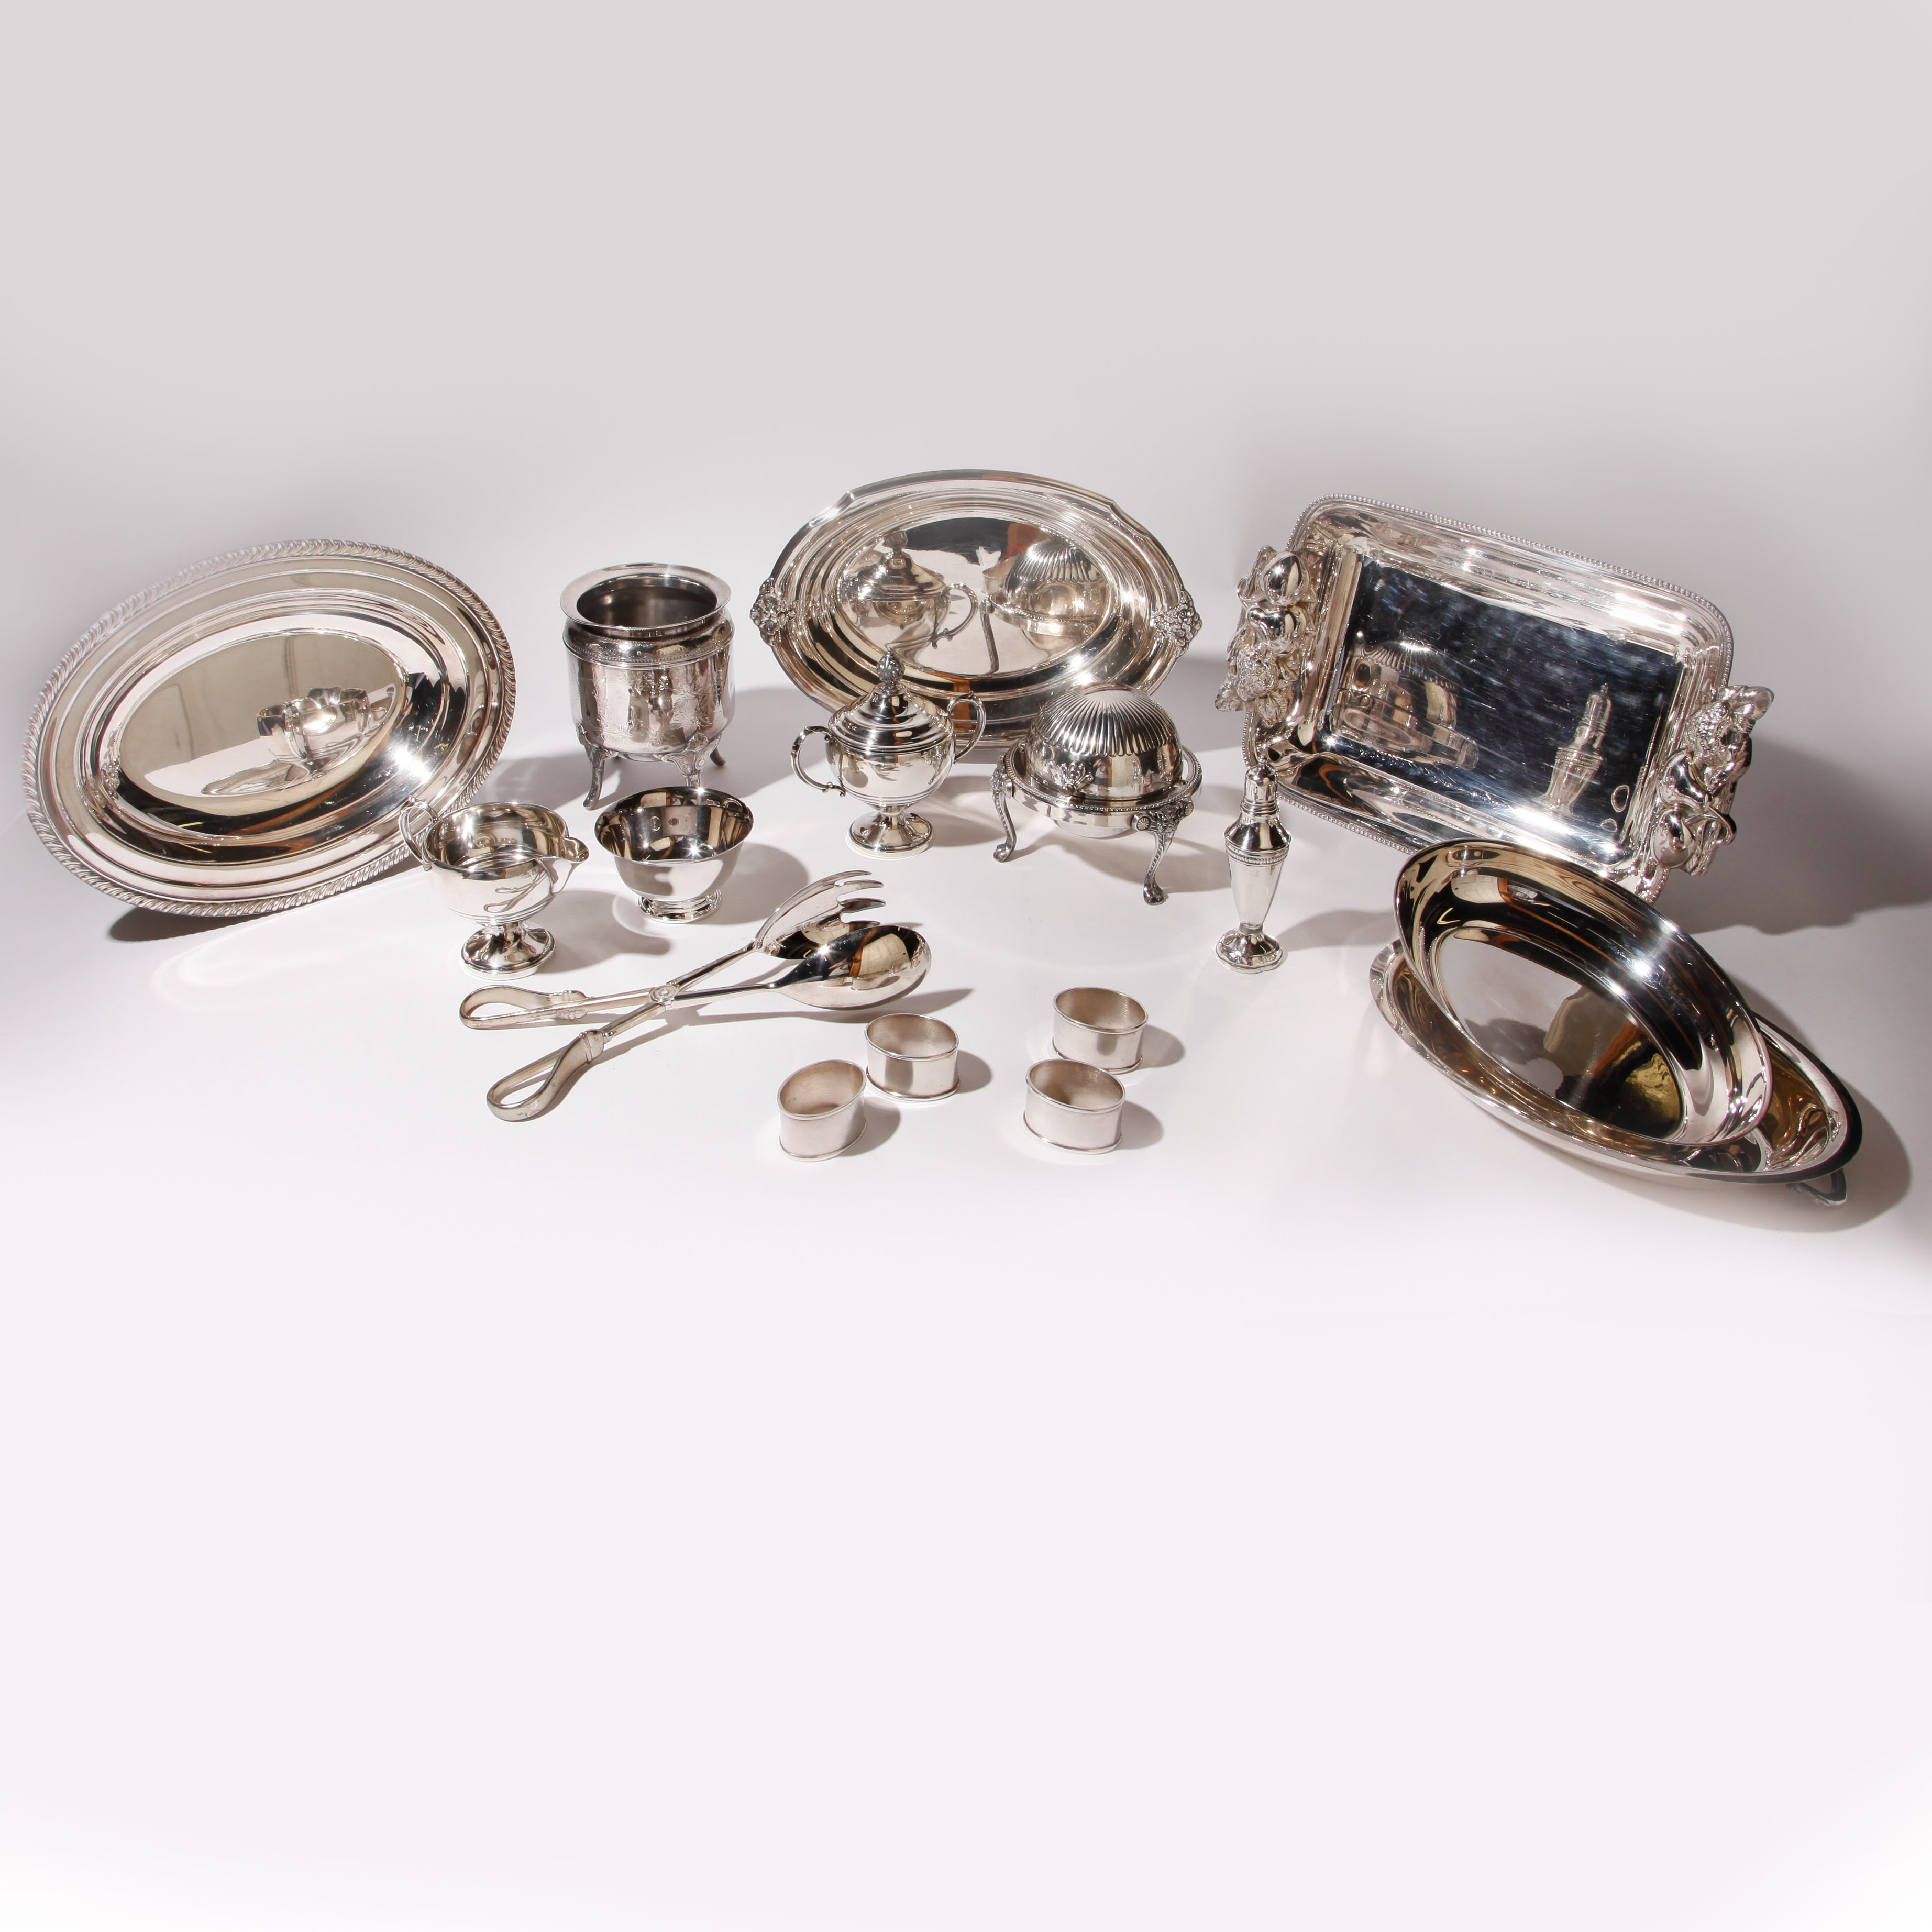 Collection of Weighted Sterling and Silver Plate Dishware